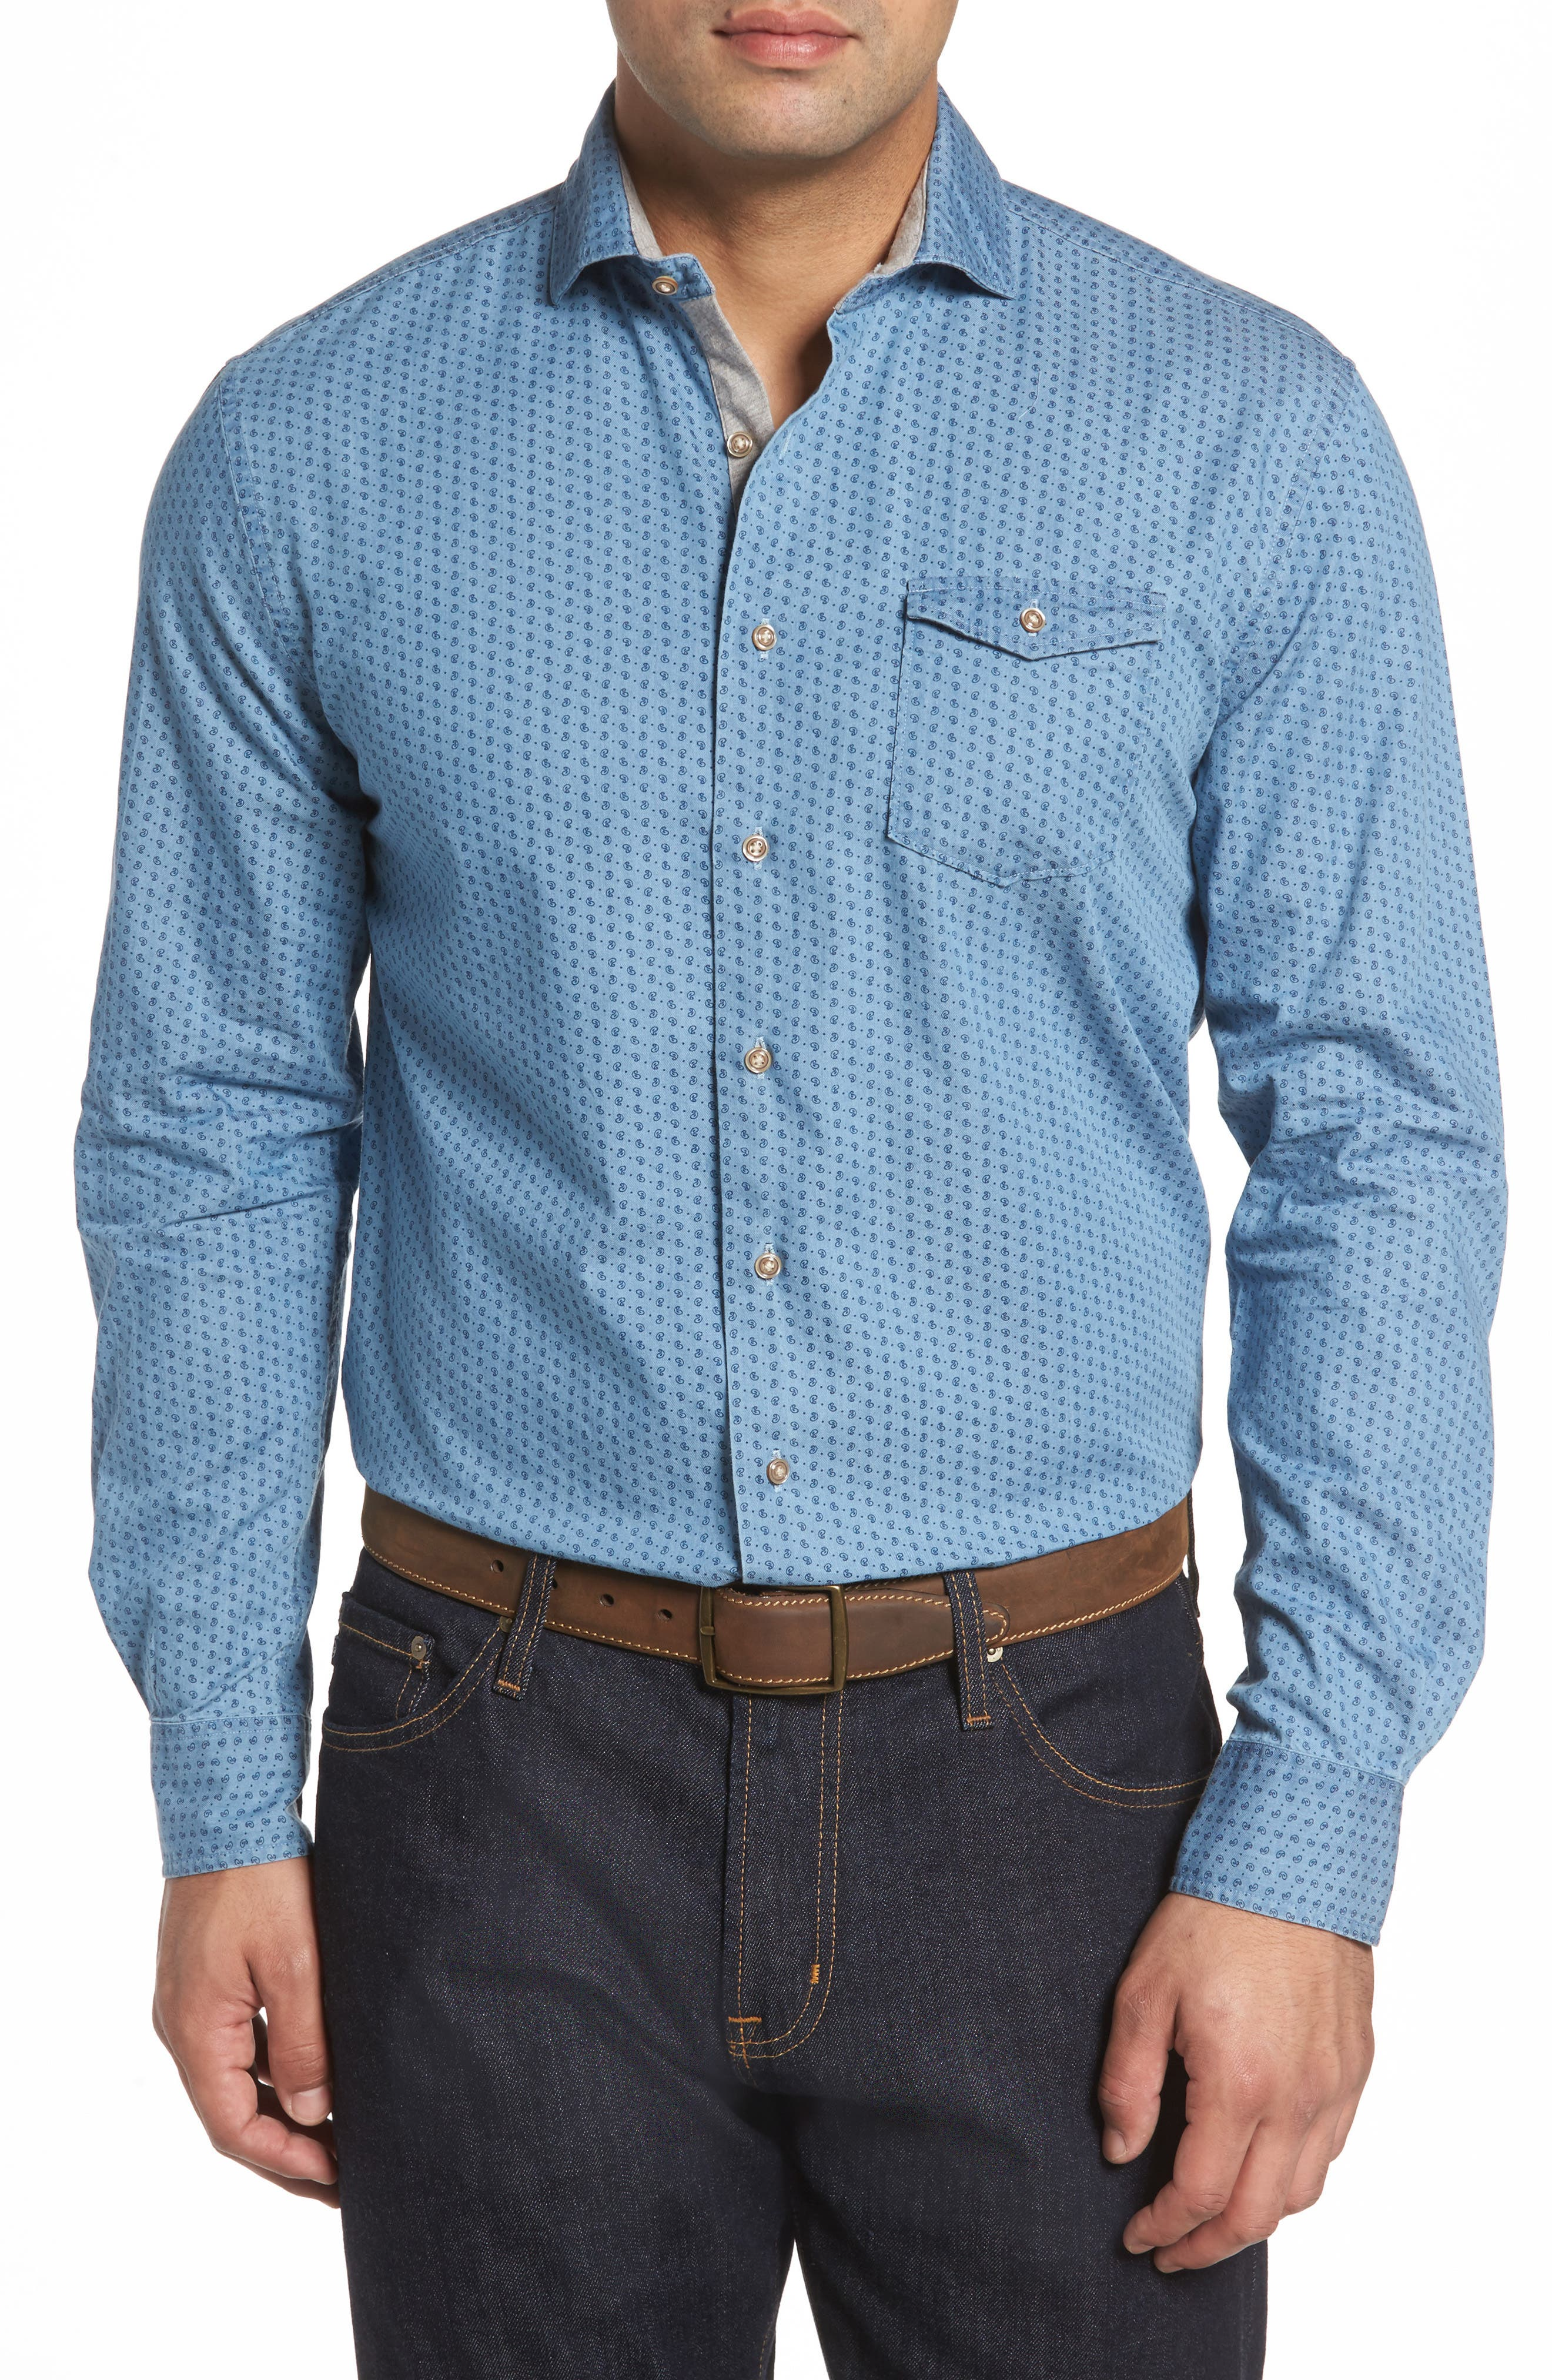 Main Image - johnnie-O Capetown Classic Fit Paisley Sport Shirt